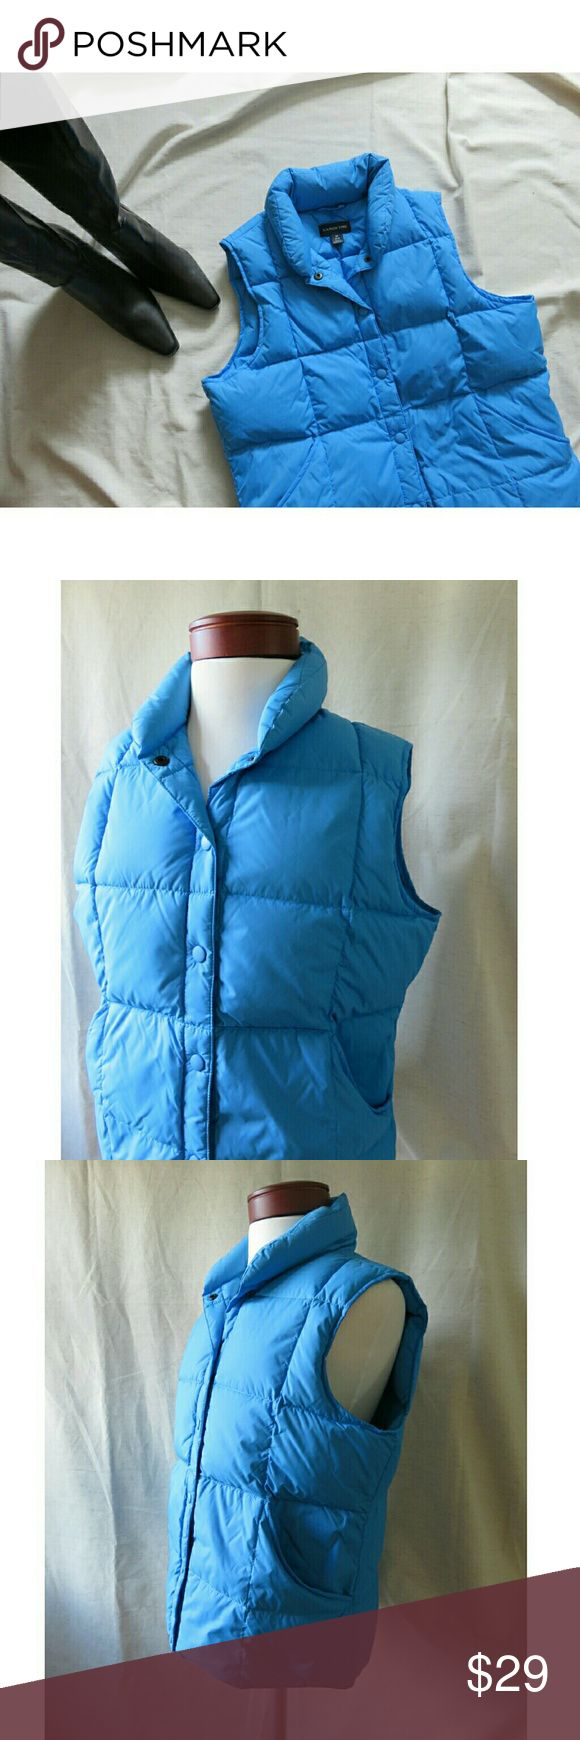 """LN Land's End Down Puffer Vest Electric Blue Med Awesome """"electric"""" lagoon blue quilted puffer vest from Land's End! Snap closures down front, 2 large hip slip pockets, curved/ longer back hemline. Insulation is 70% goosedown, 30% feathers. Size Ladies Medium 10-12. In excellent condition, like new, no stains/ flaws/ odors. Packed carefully and shipped fast! Thanks so much, Jen  #986 Lands' End Jackets & Coats Vests"""